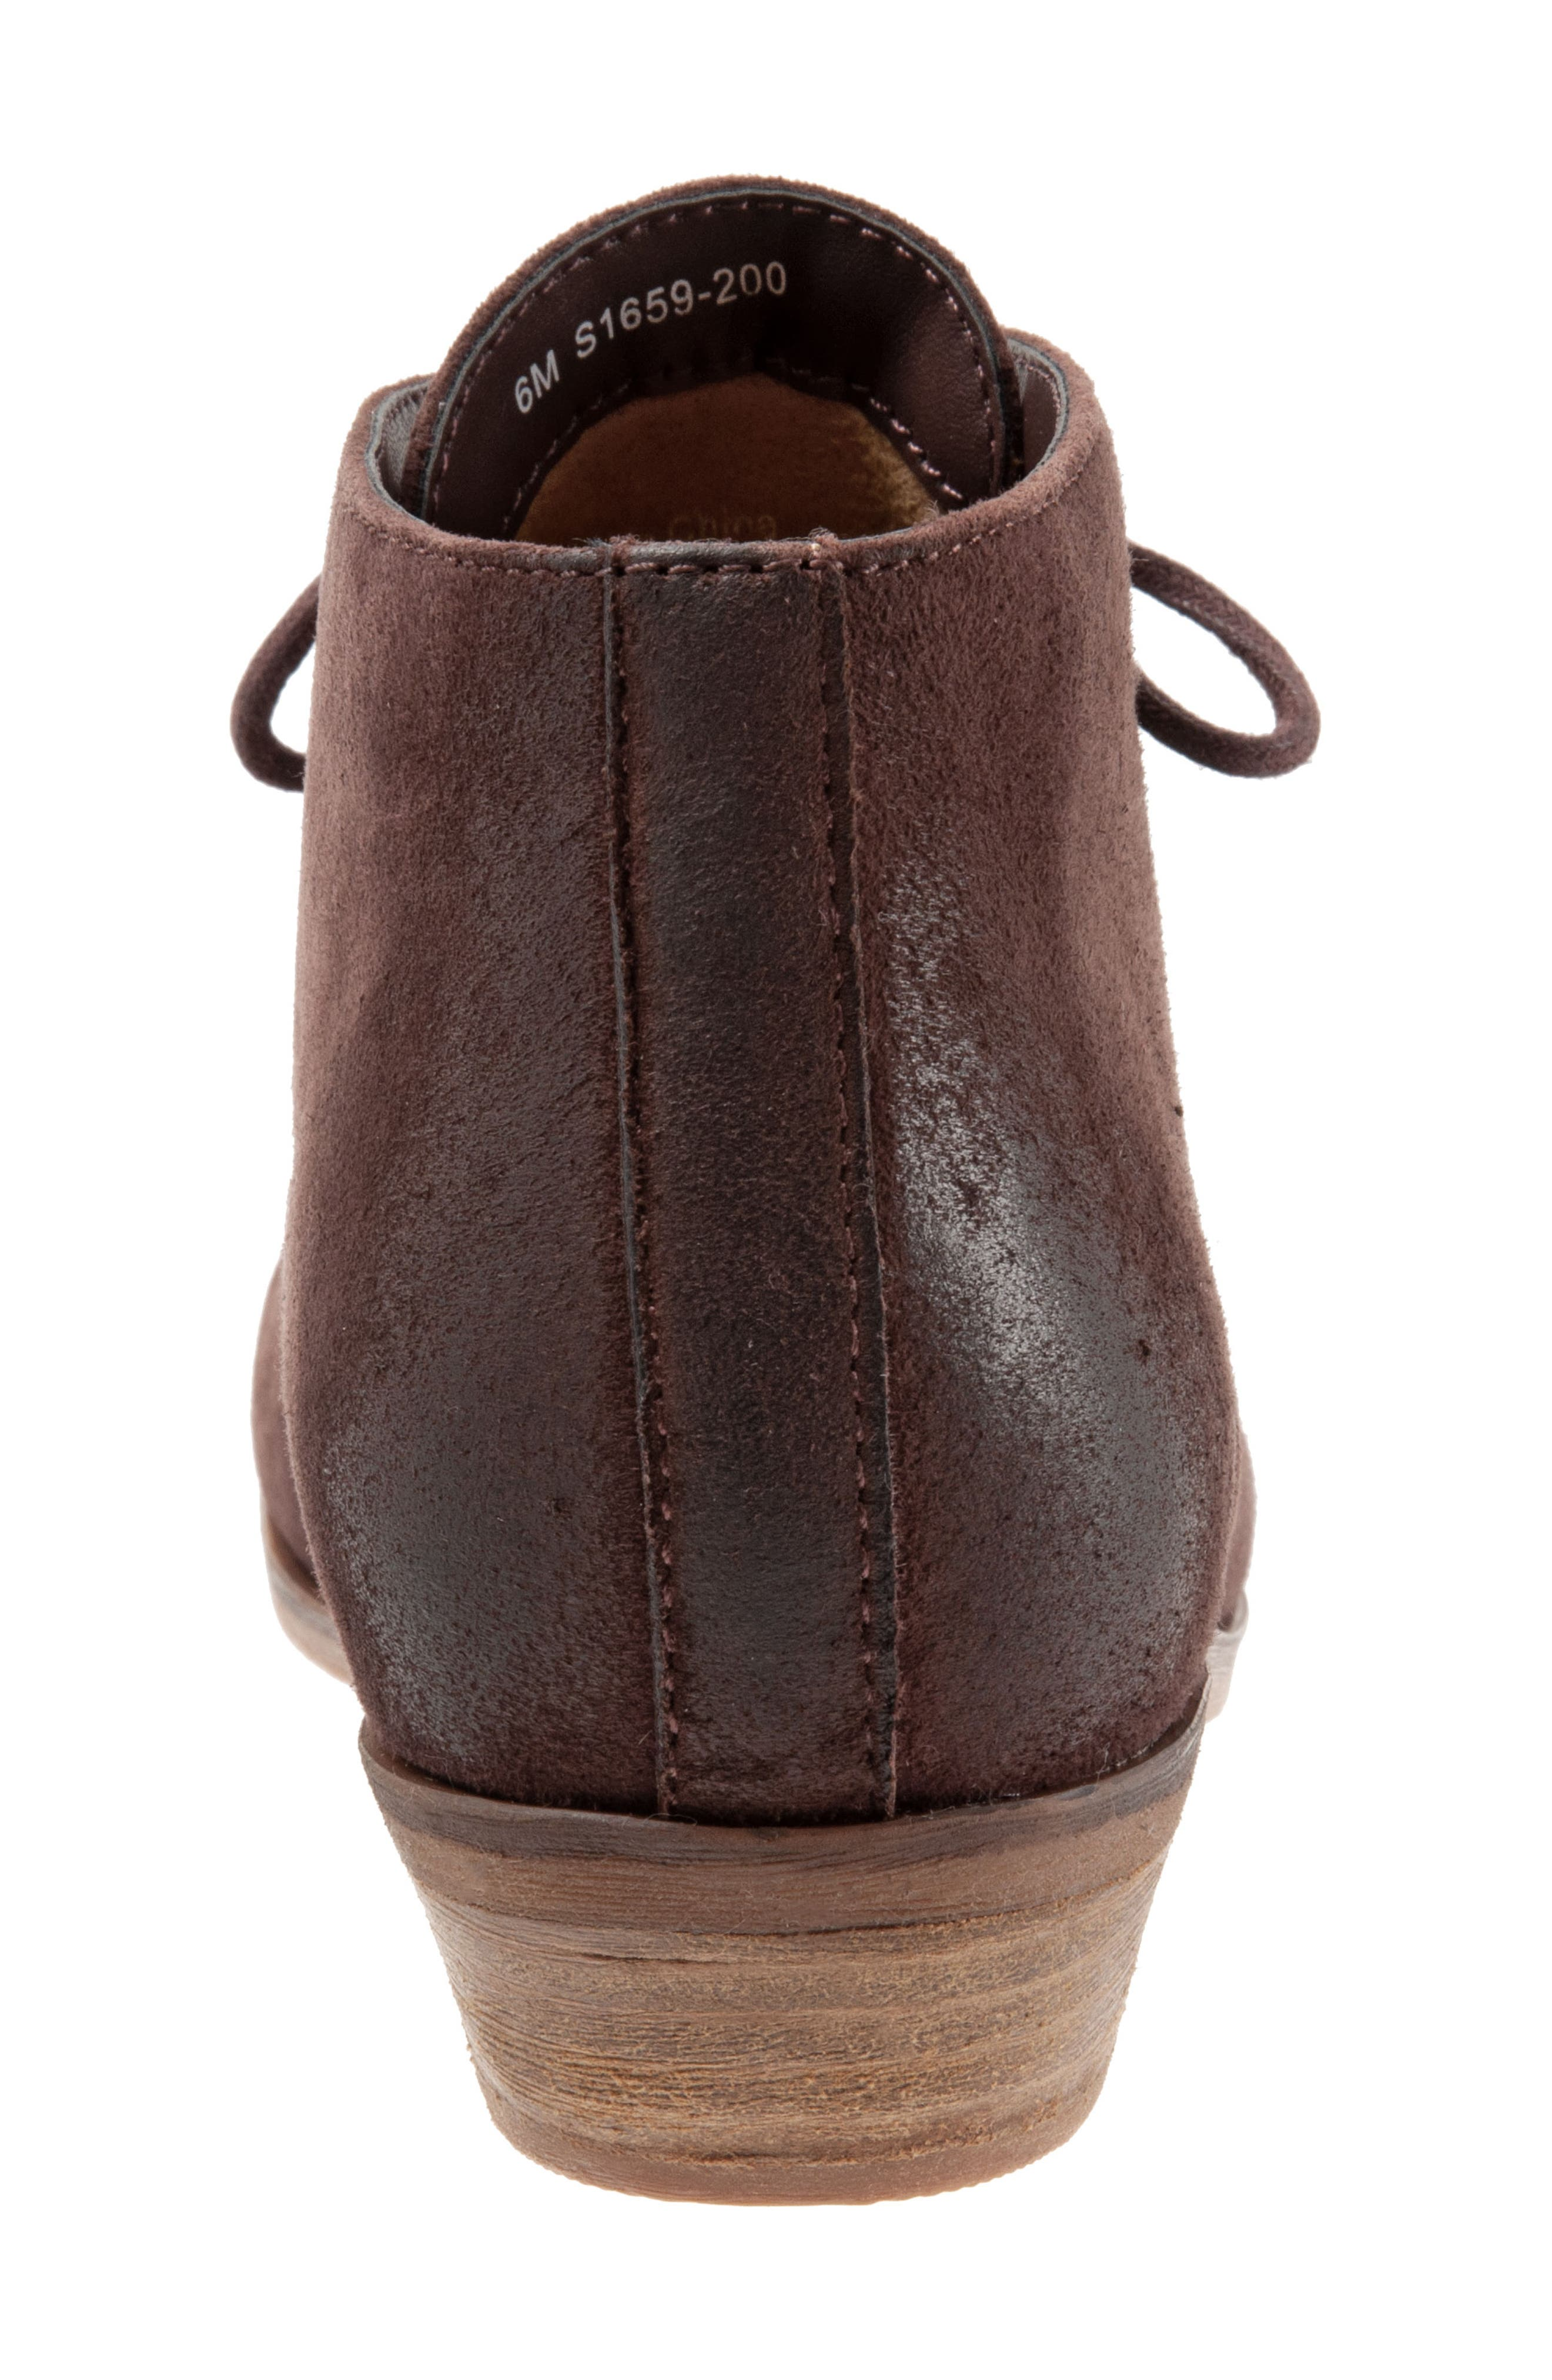 'Ramsey' Chukka Boot,                             Alternate thumbnail 7, color,                             DARK BROWN LEATHER